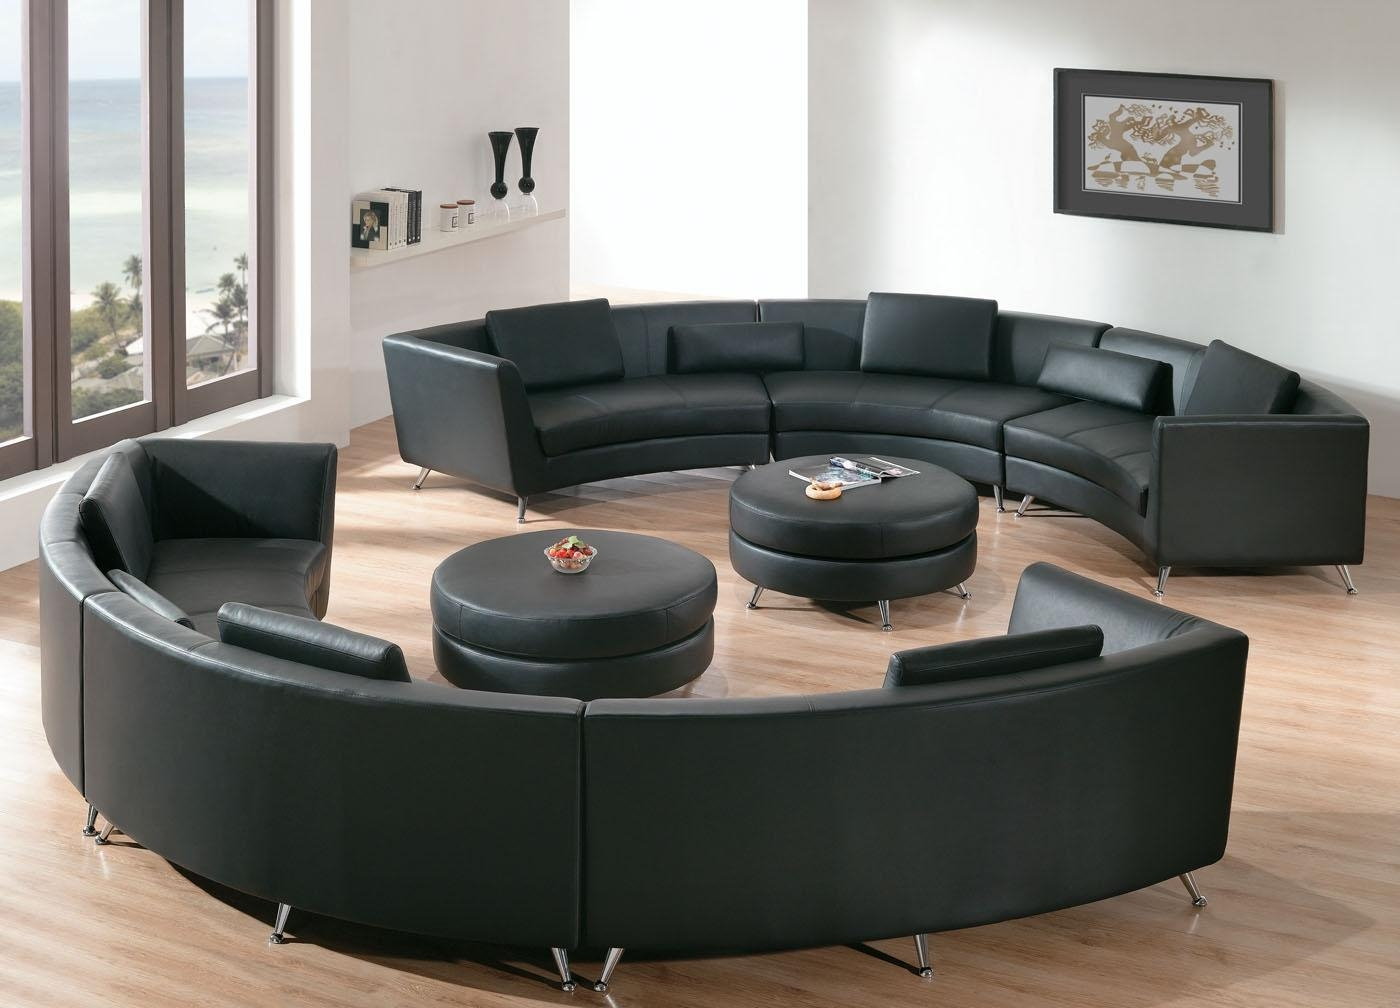 20 best collection of big round sofa chairs sofa ideas. Black Bedroom Furniture Sets. Home Design Ideas